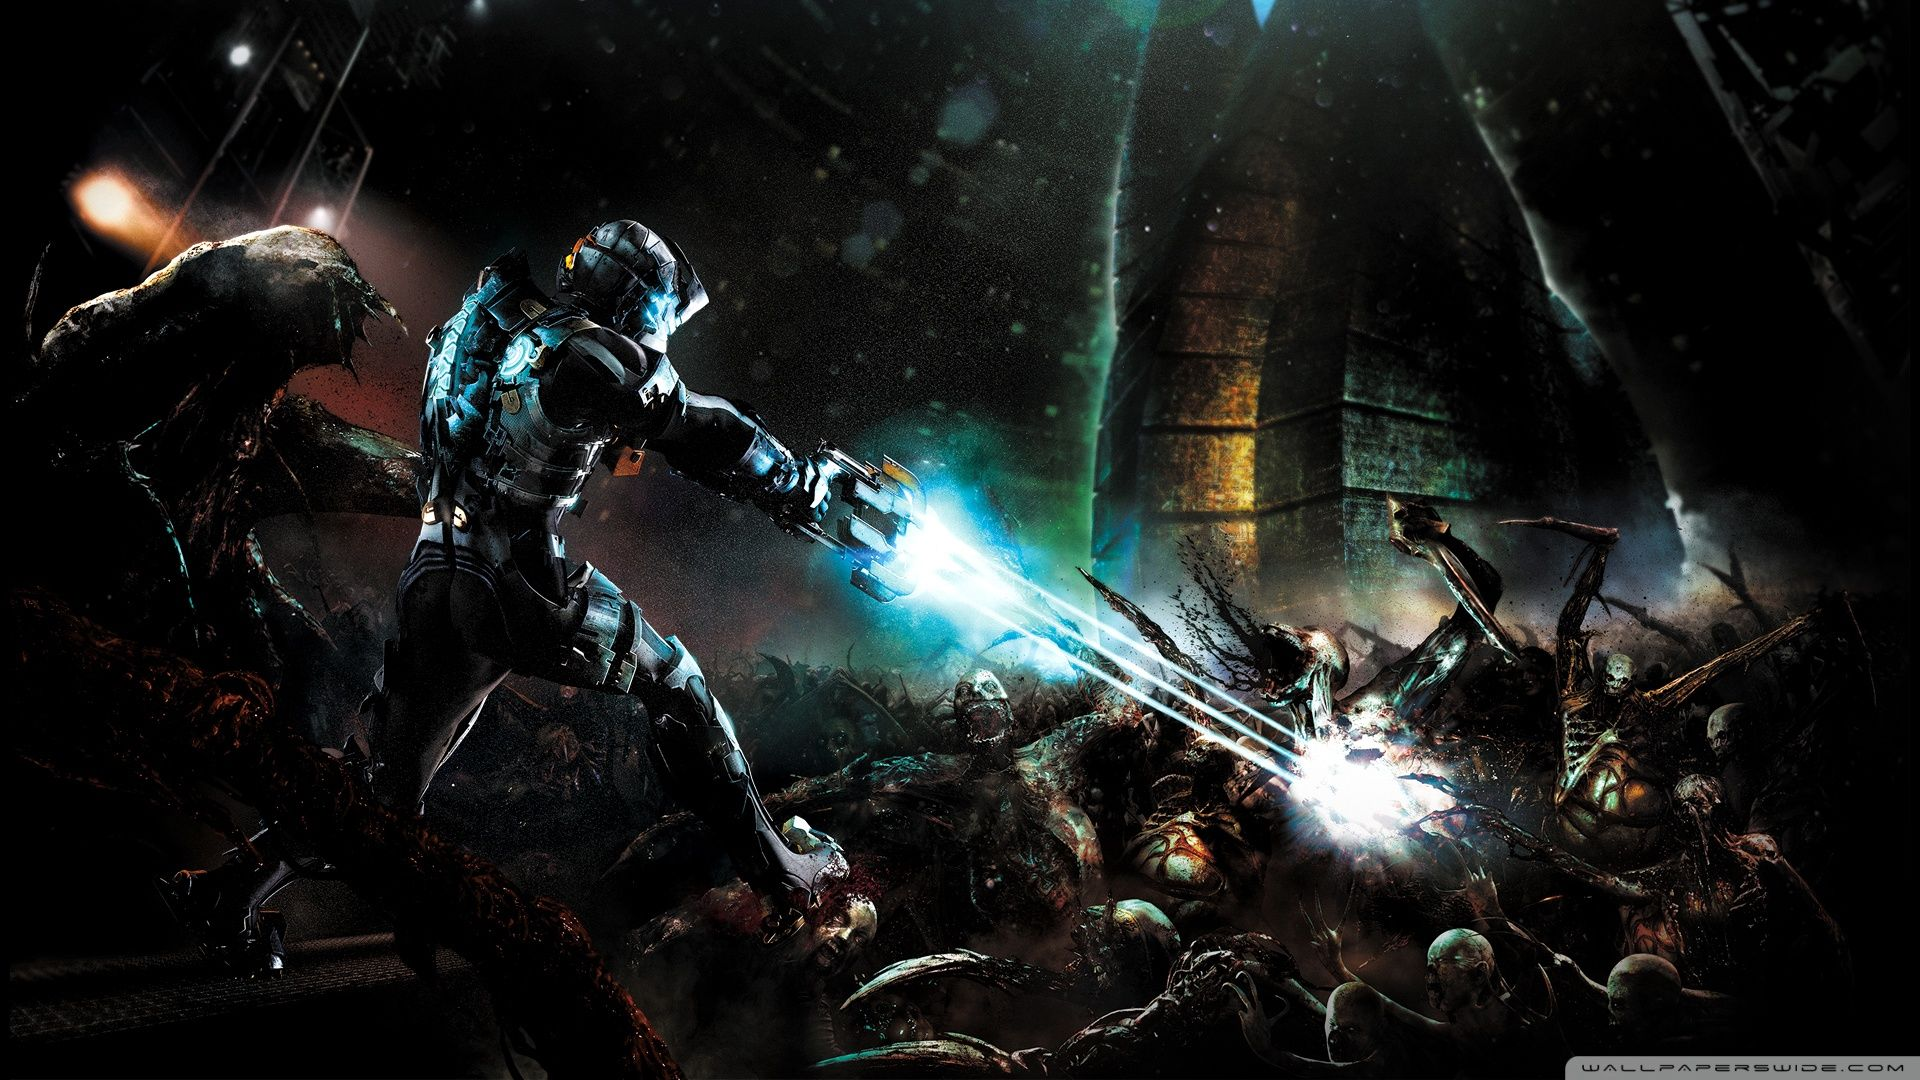 Dead Space 2 Wallpapers Top Free Dead Space 2 Backgrounds